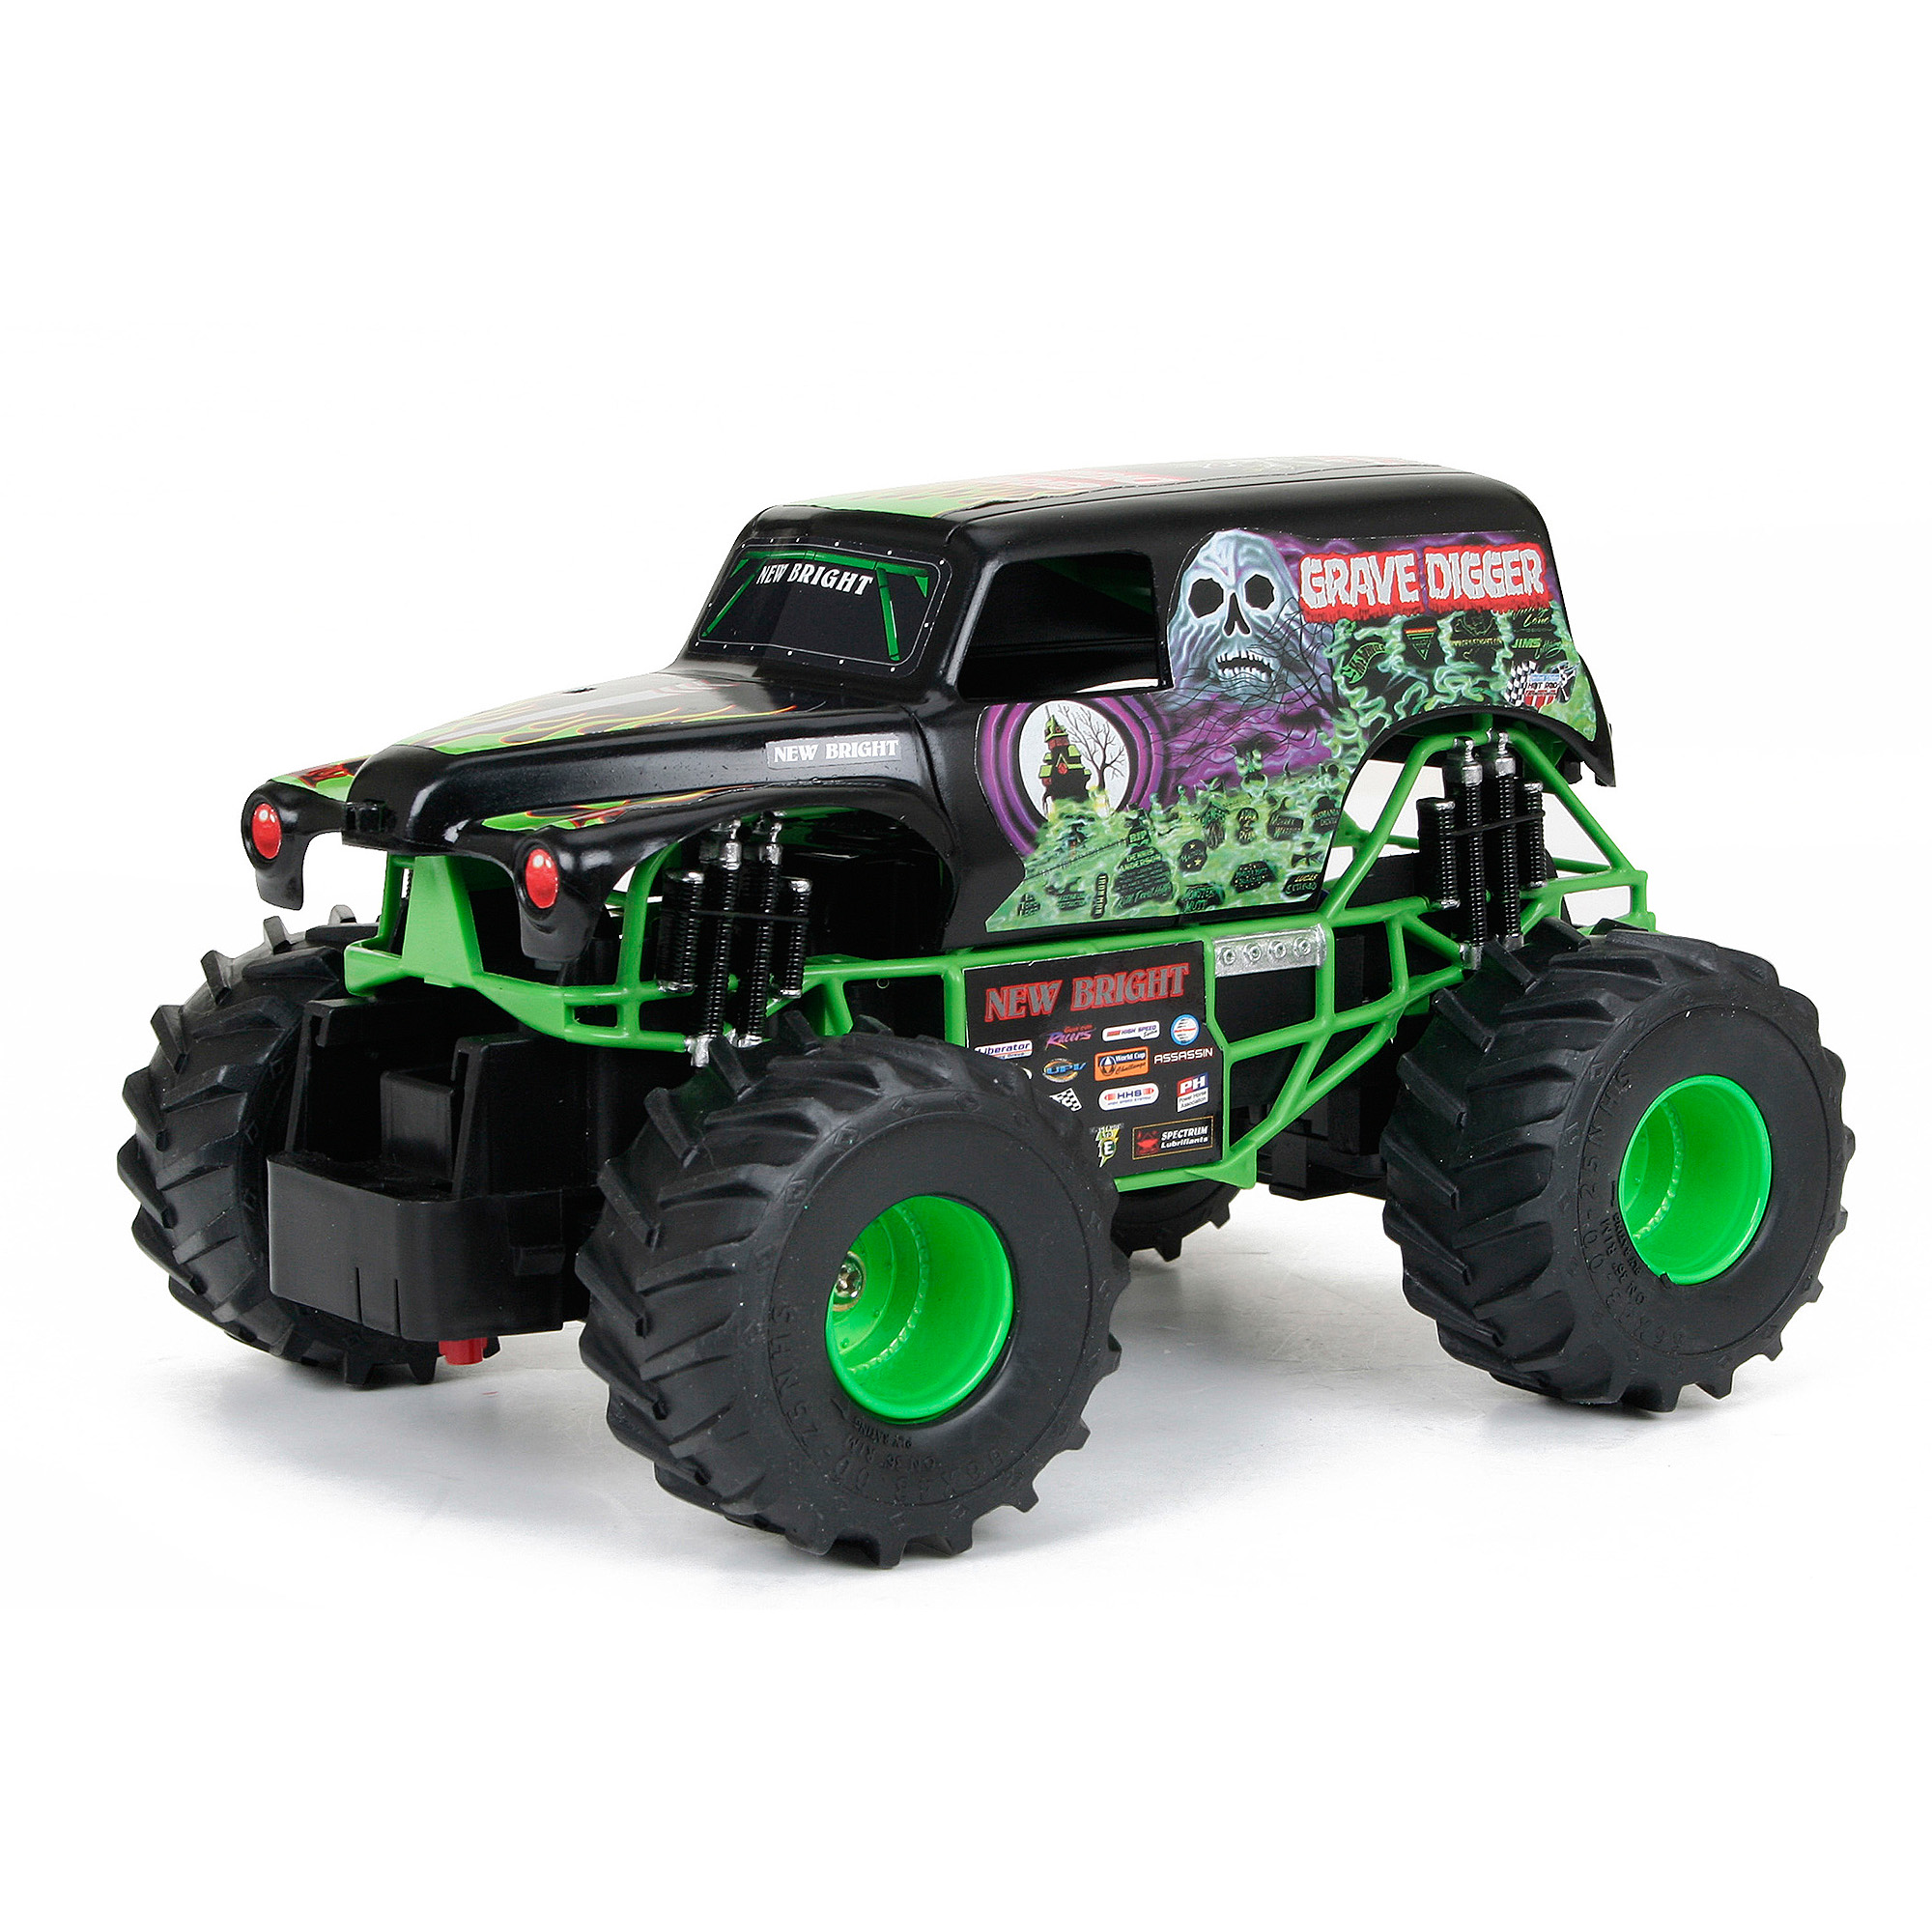 New Bright 1:24 Scale R/C Monster Jam - Grave Digger